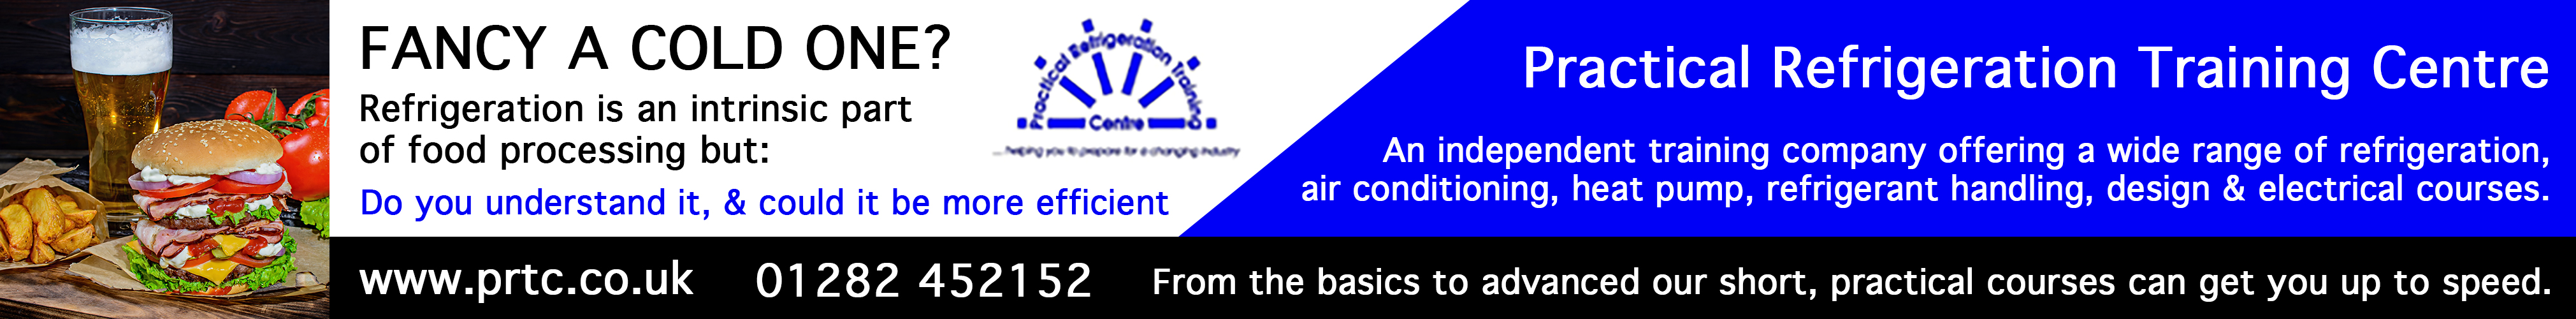 Practical Refrigeration Training Centre